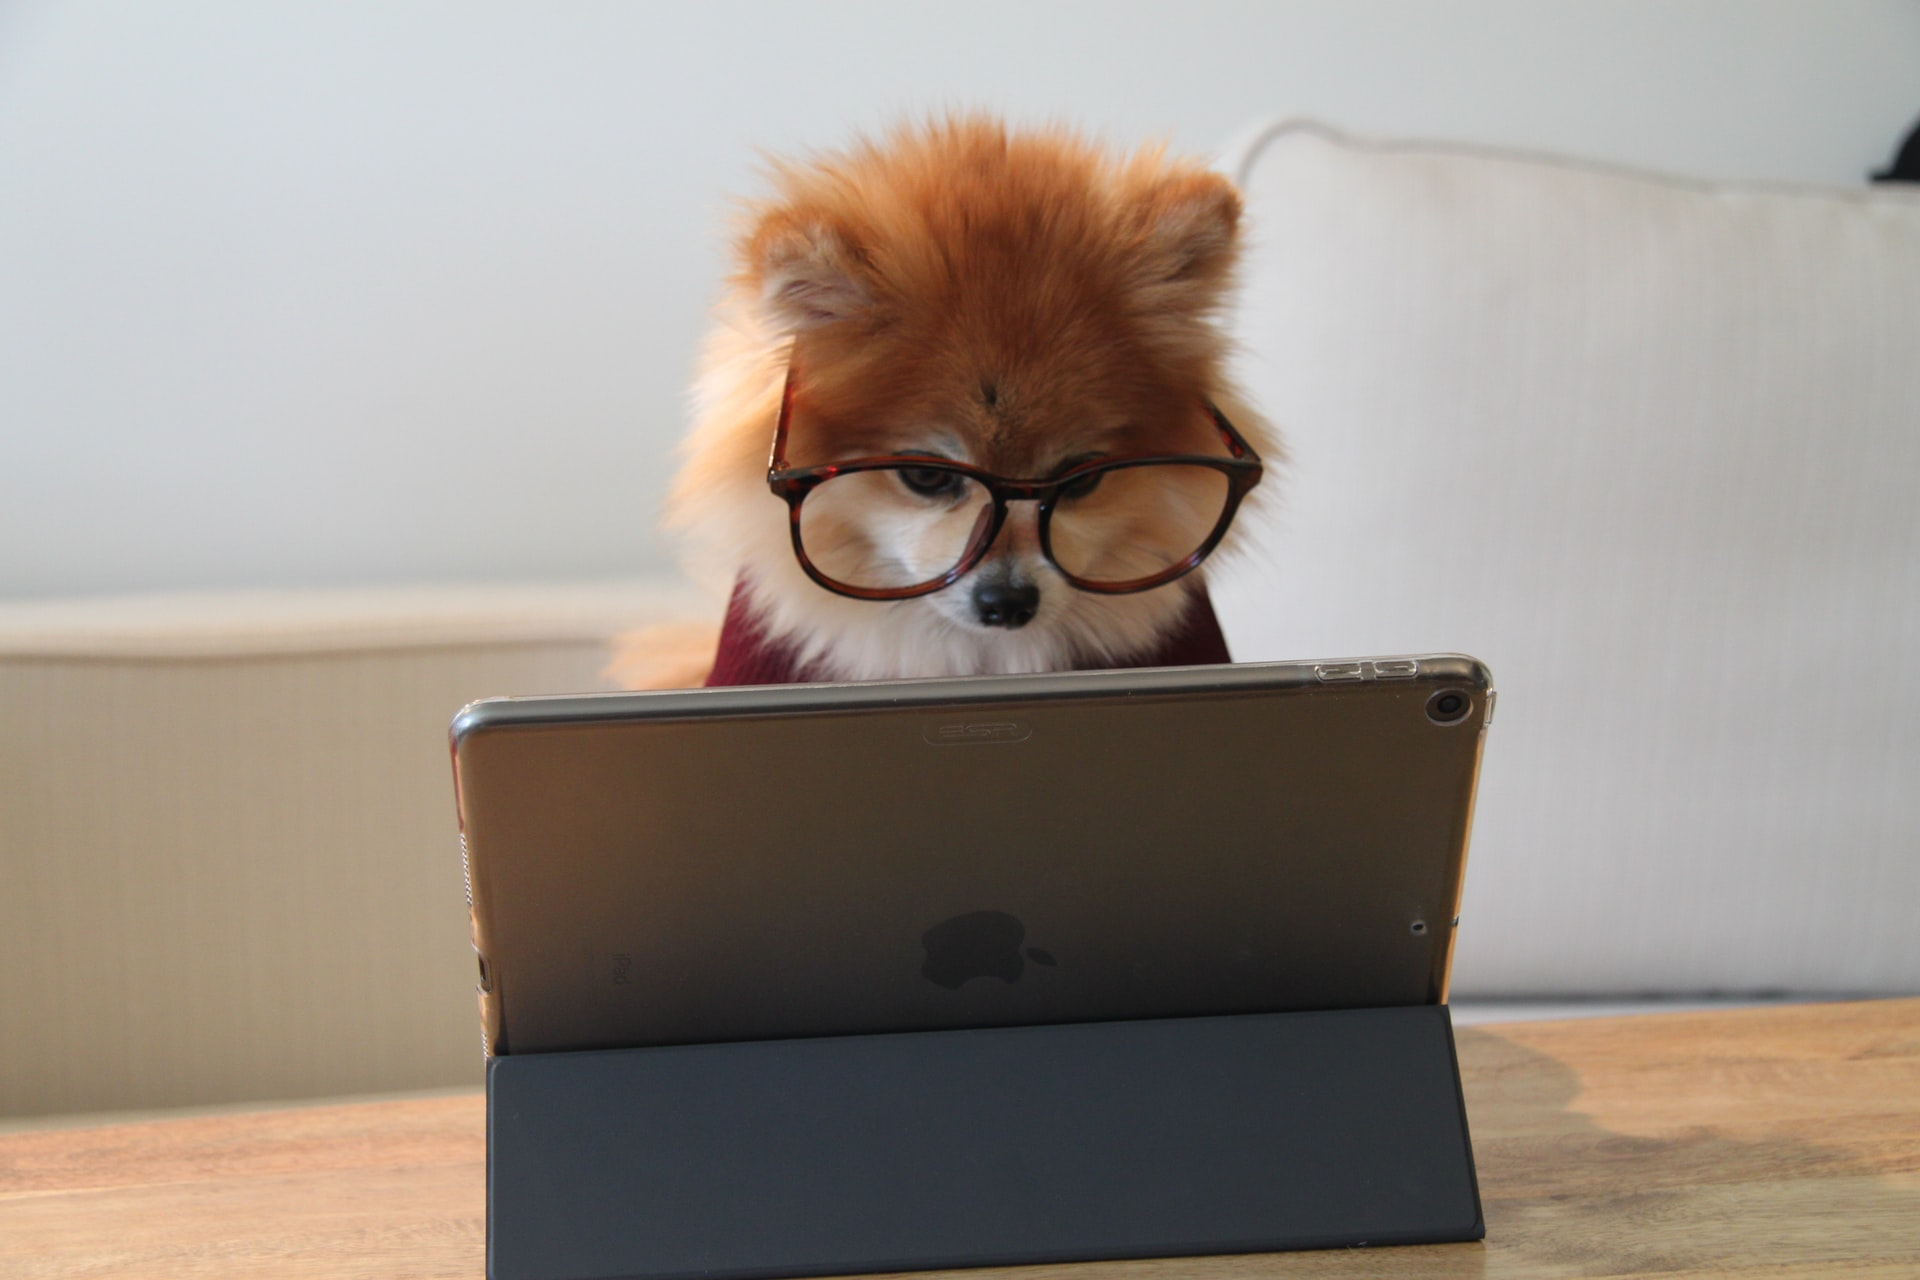 Dog working at a computer